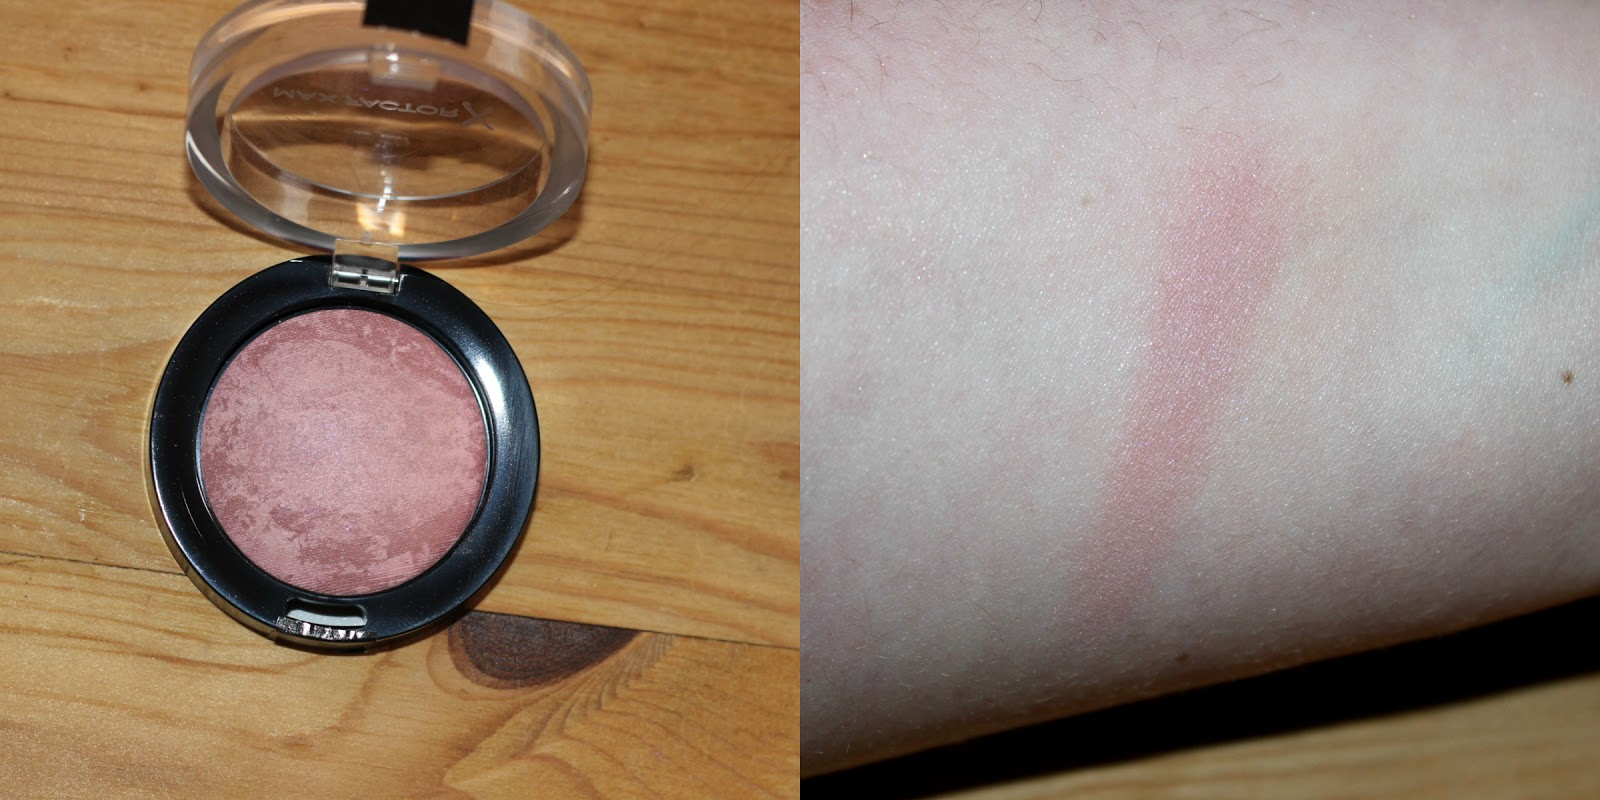 Maxfactor Creme Puff Blush In Lavish Mauve Swatch